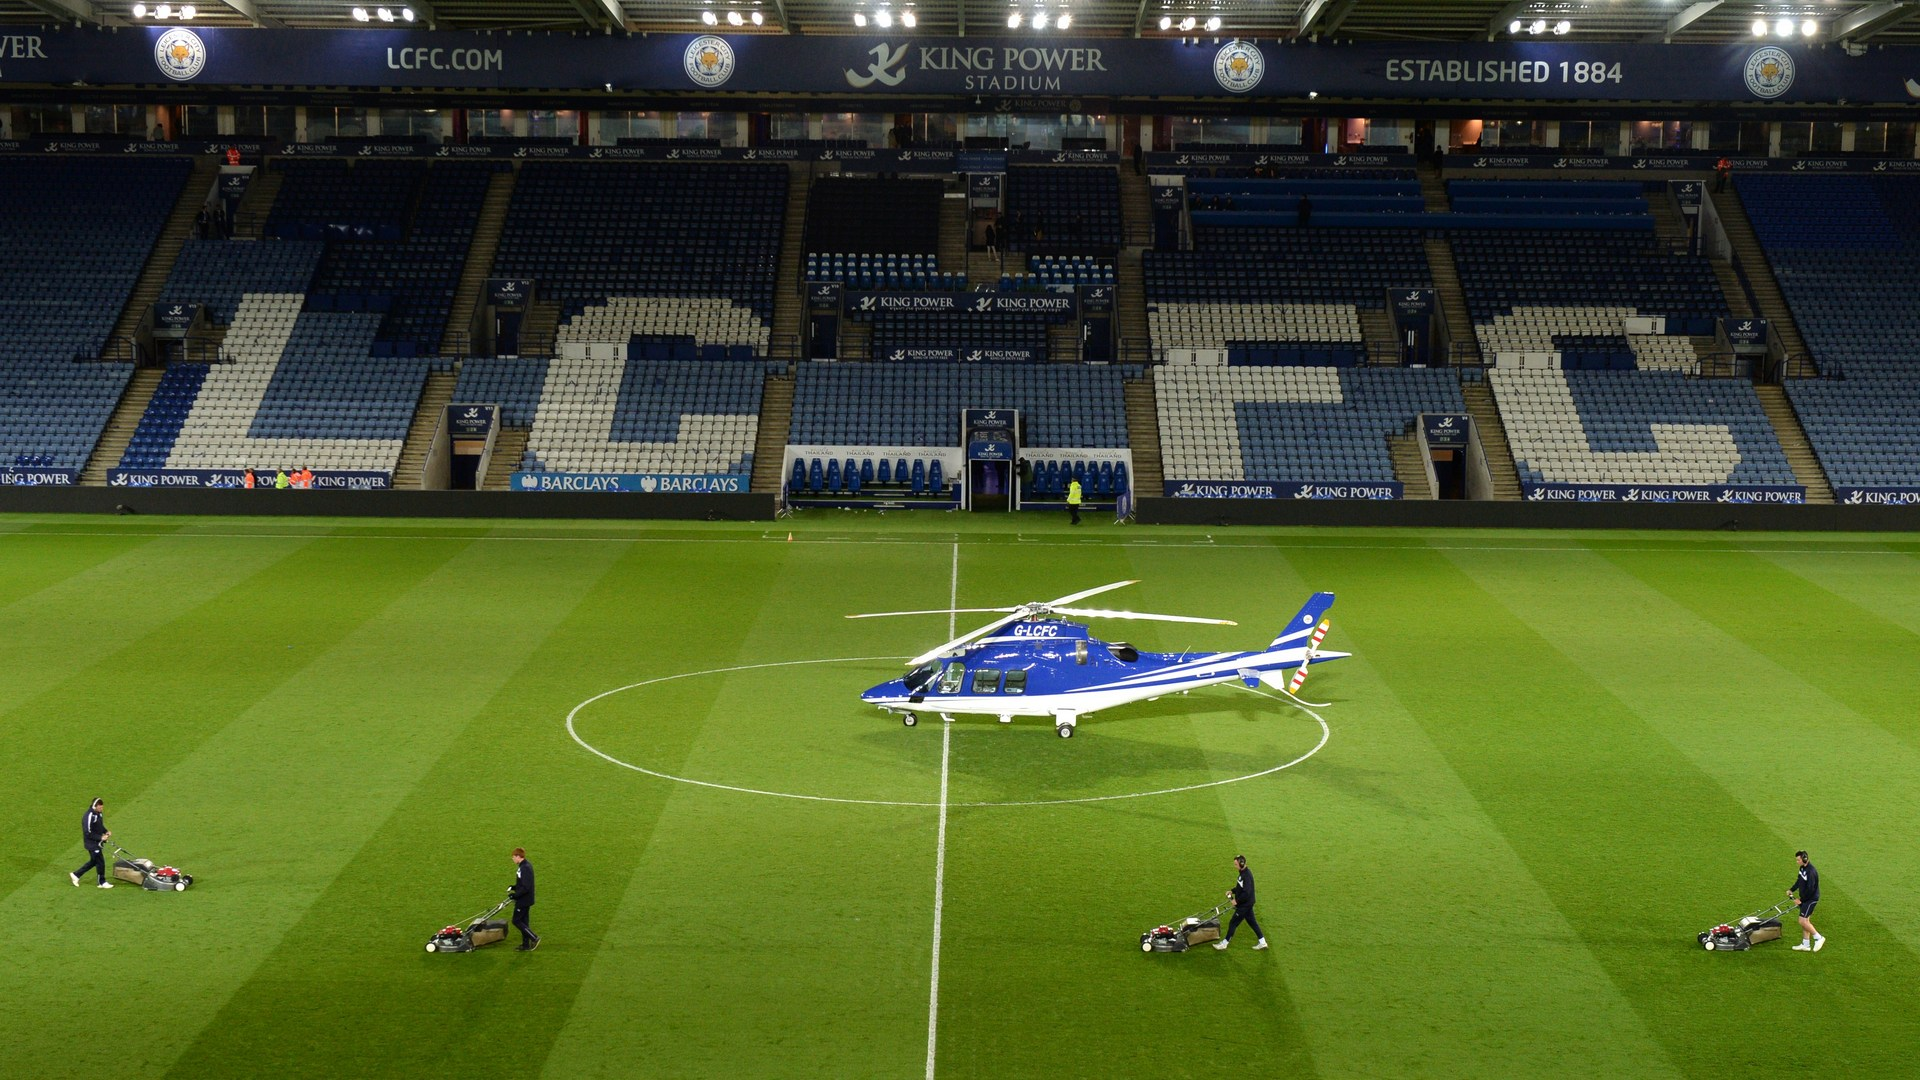 Leicester City owner's helicopter crashes at the King Power Stadium